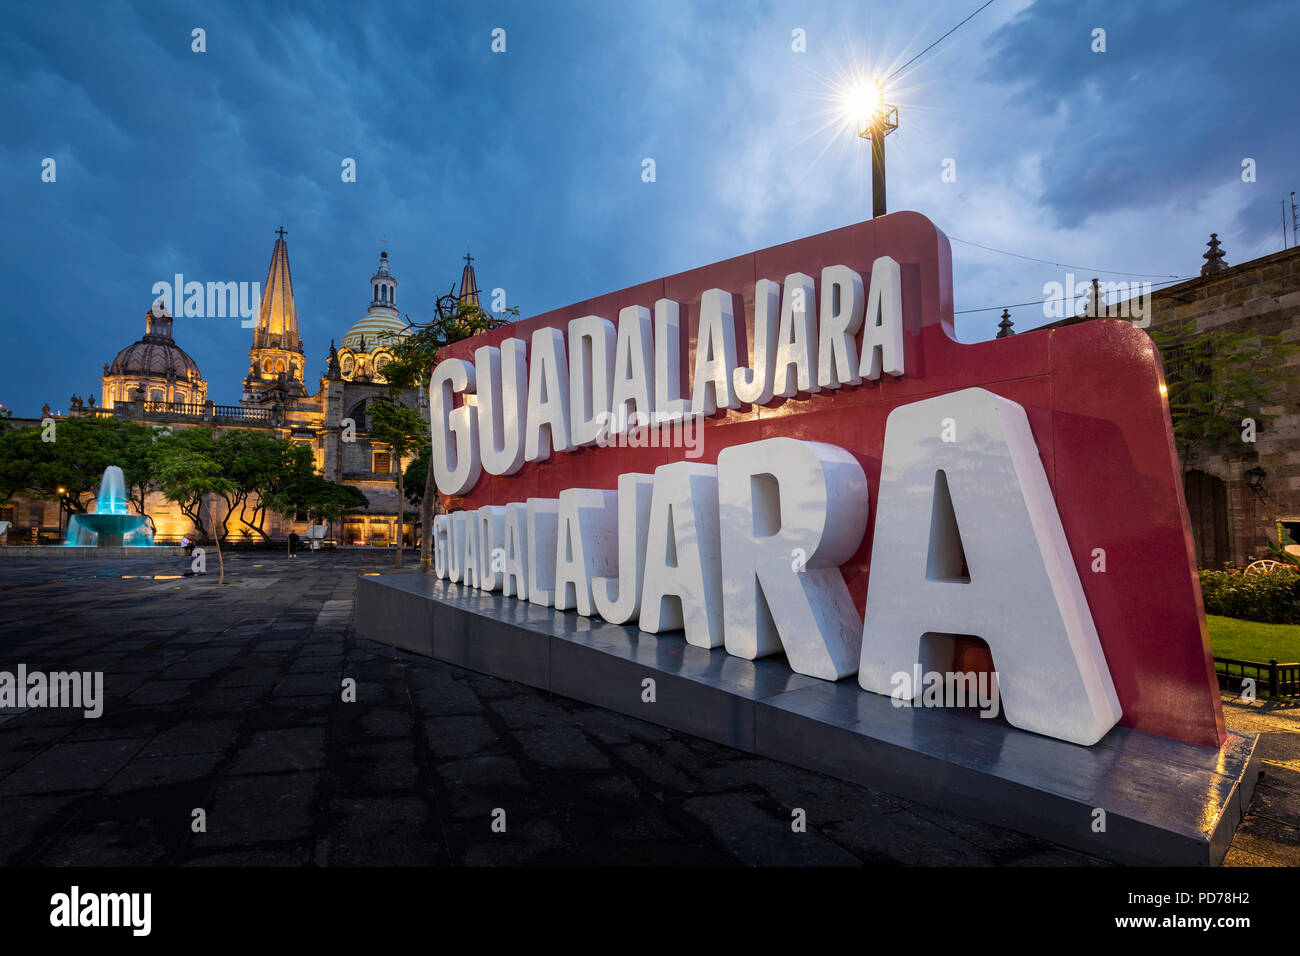 'Guadalajara, Guadalajara' as the song goes, and as this sign loudly announces on the Plaza Libertadores. - Stock Image